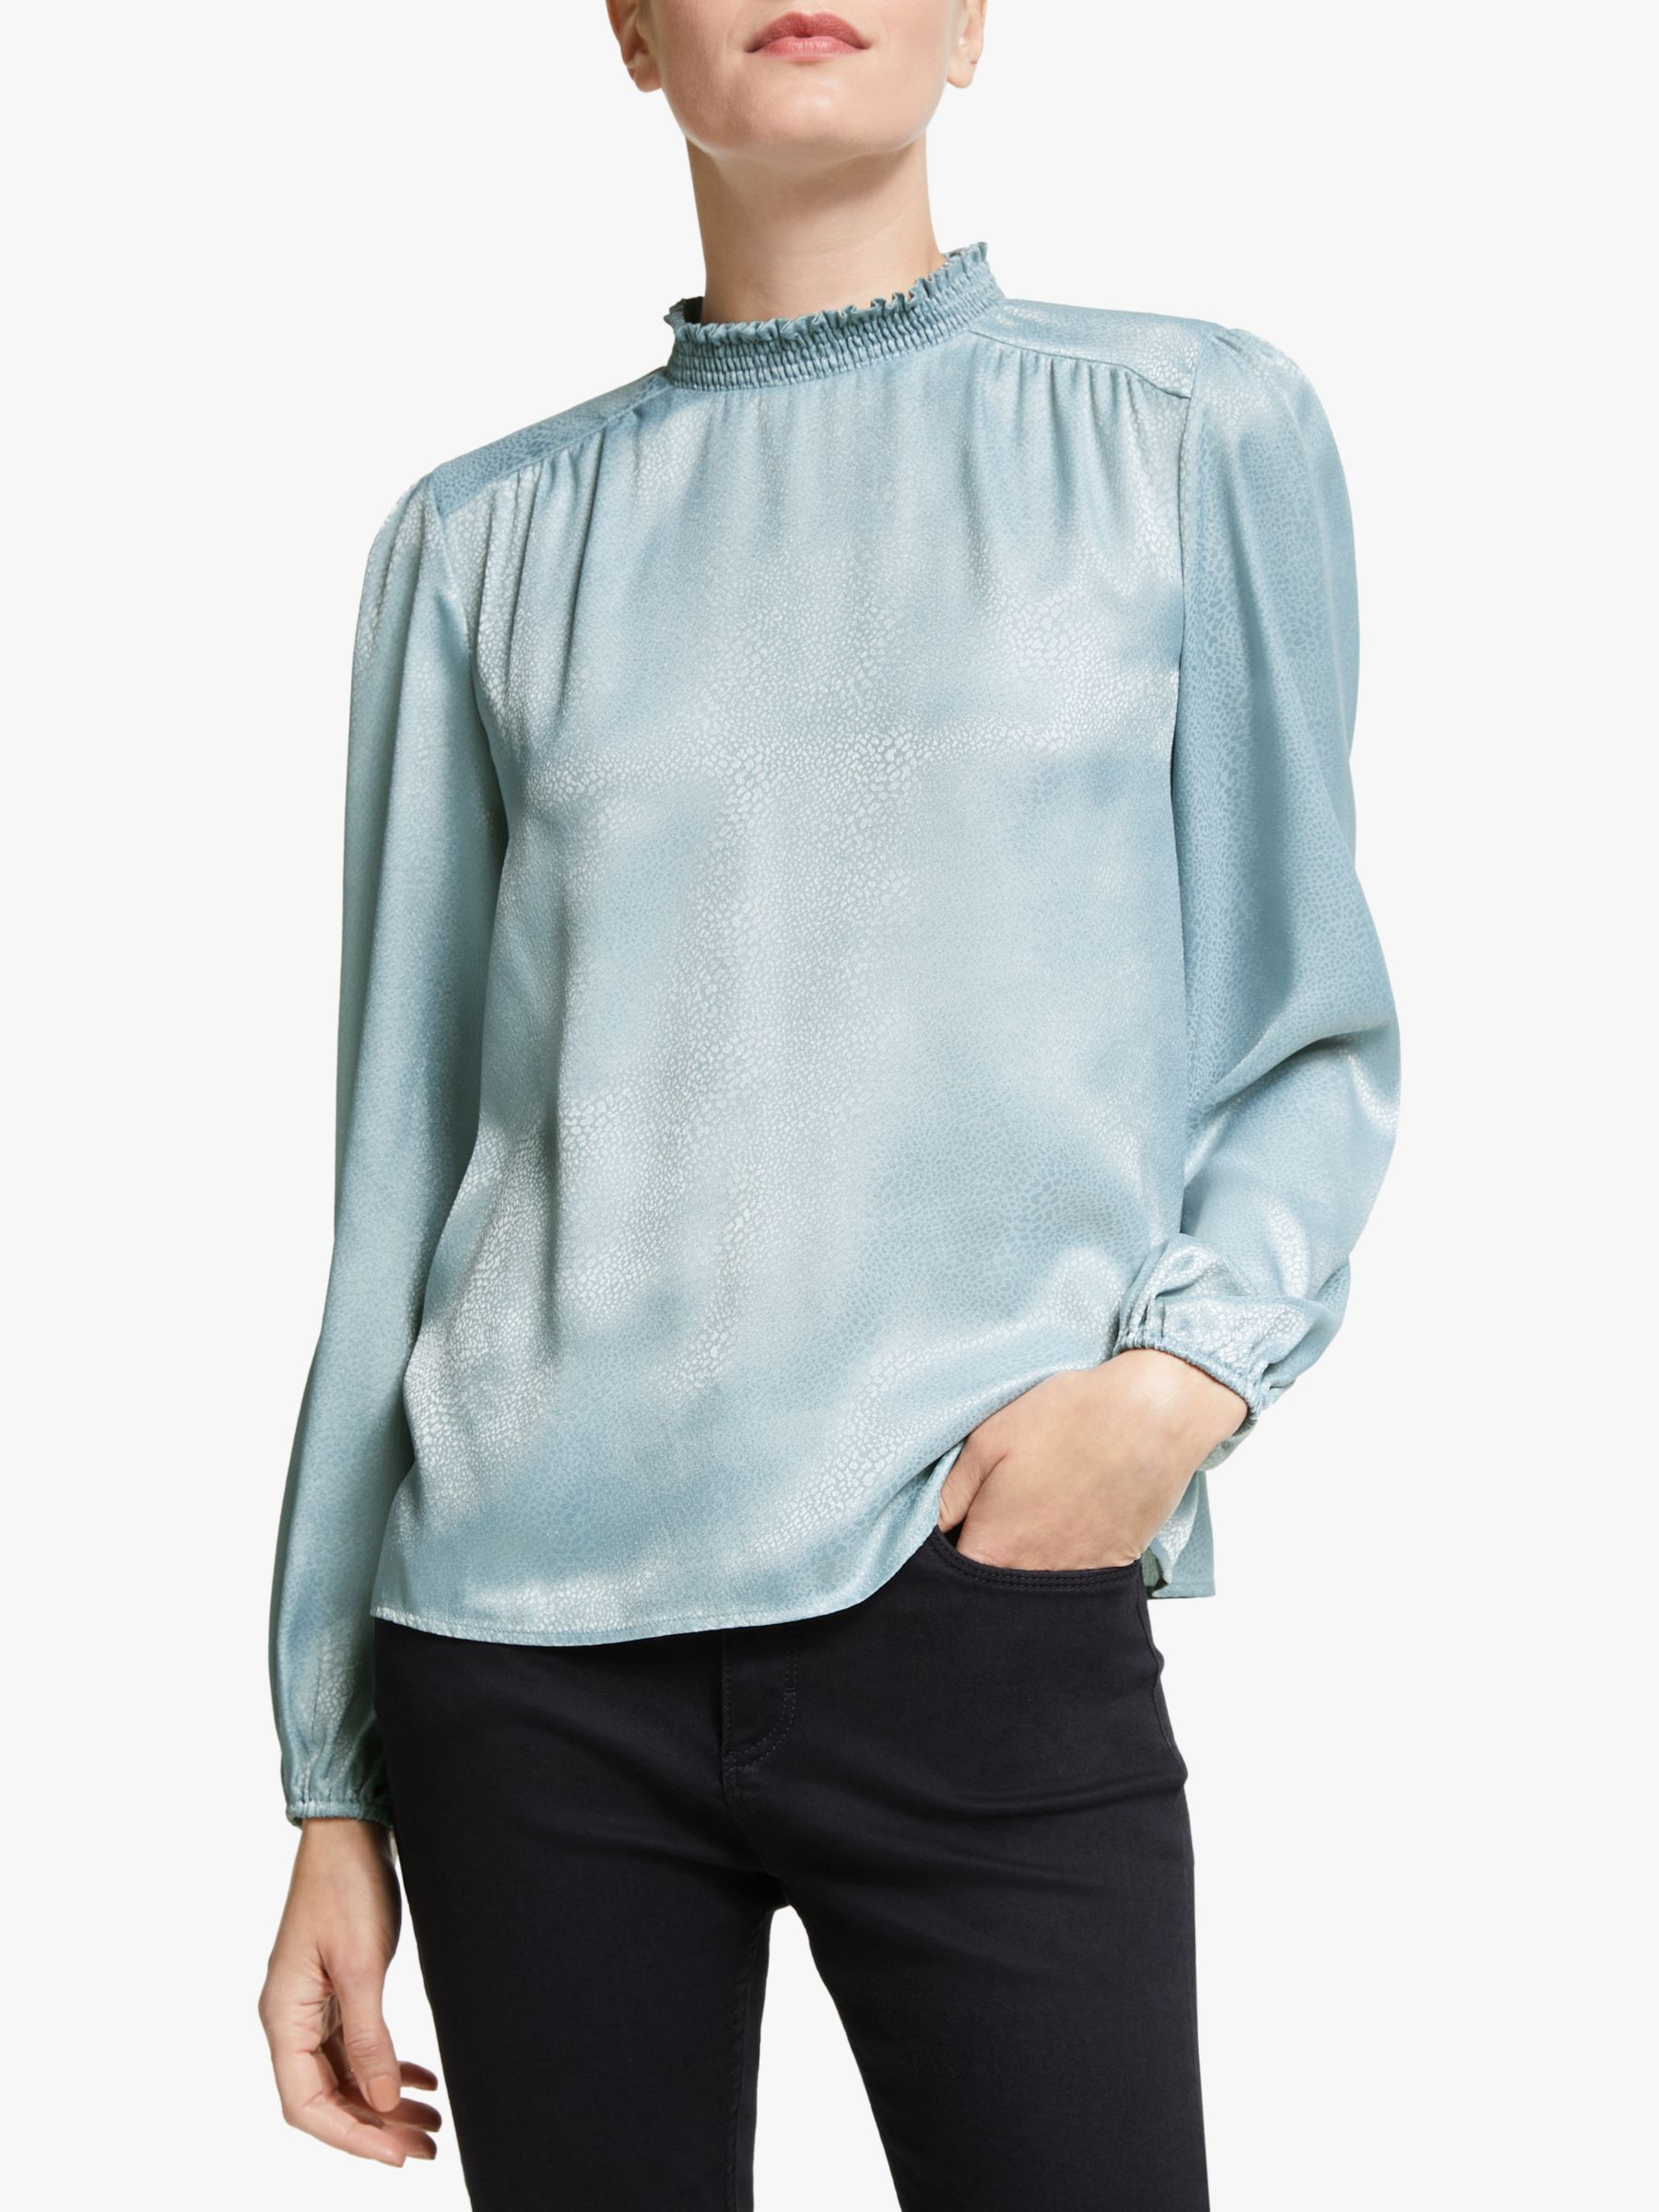 Vero Moda AWARE BY VERO MODA Julia Satin Blouse